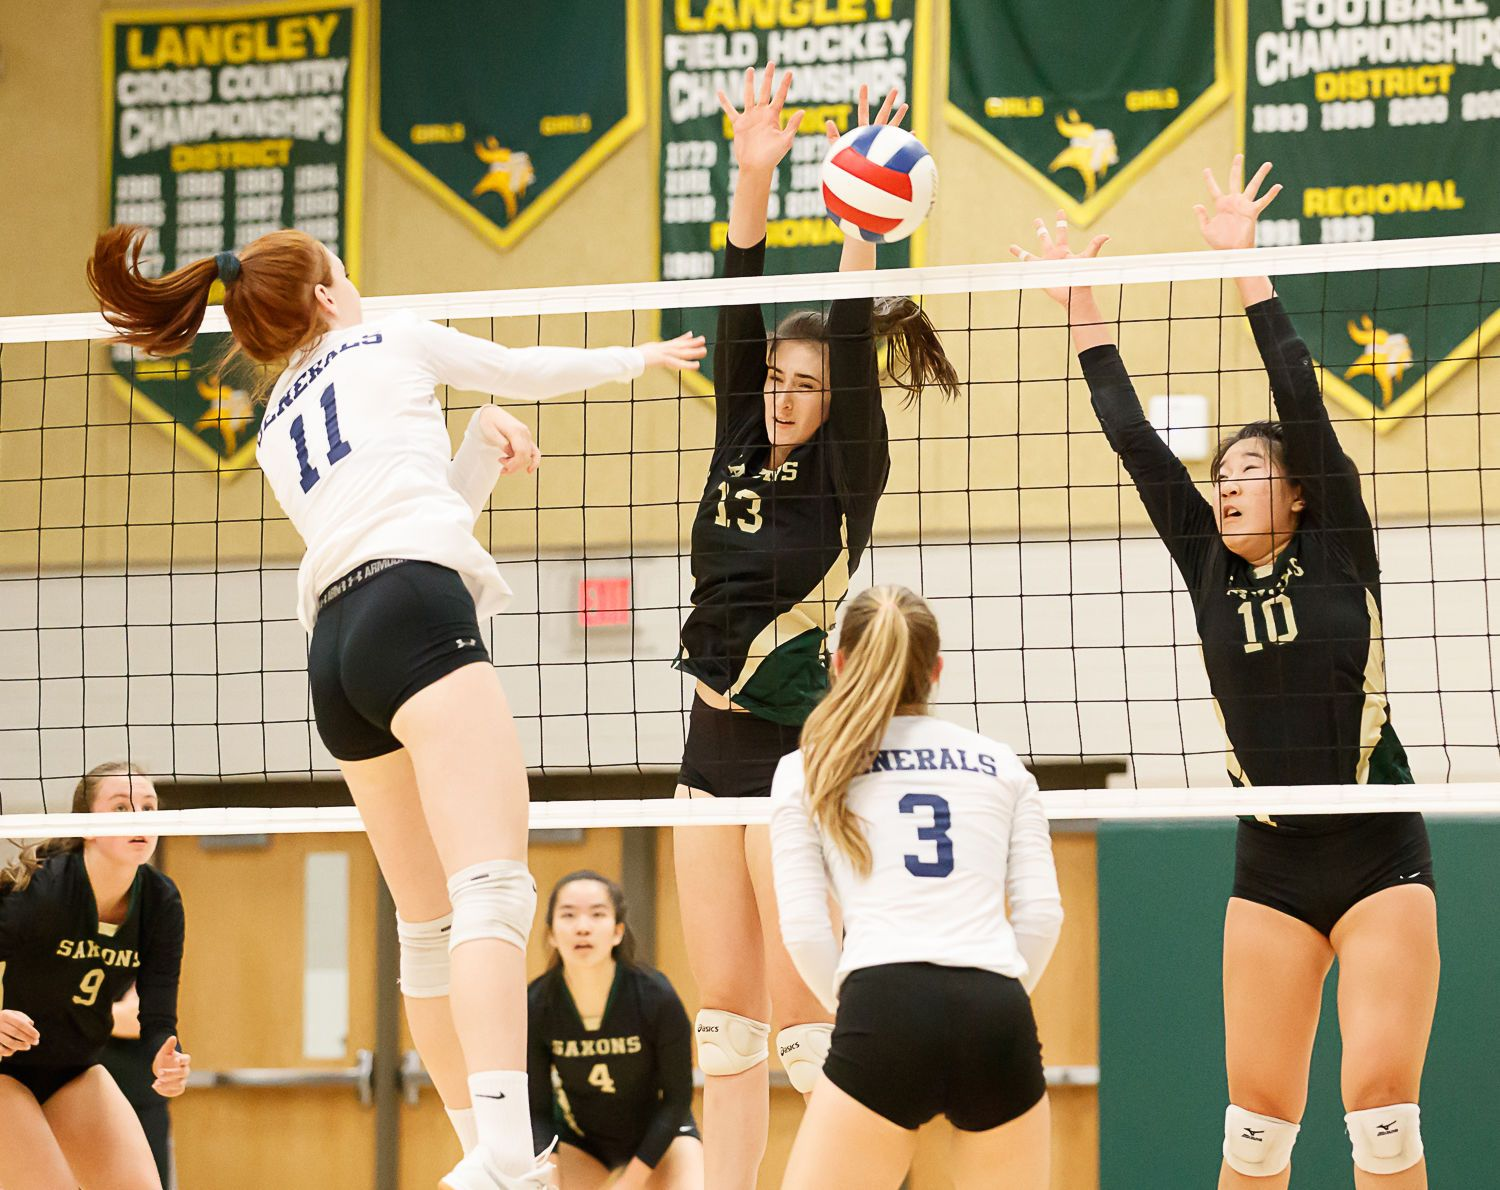 Langley Saxons volleyball 17